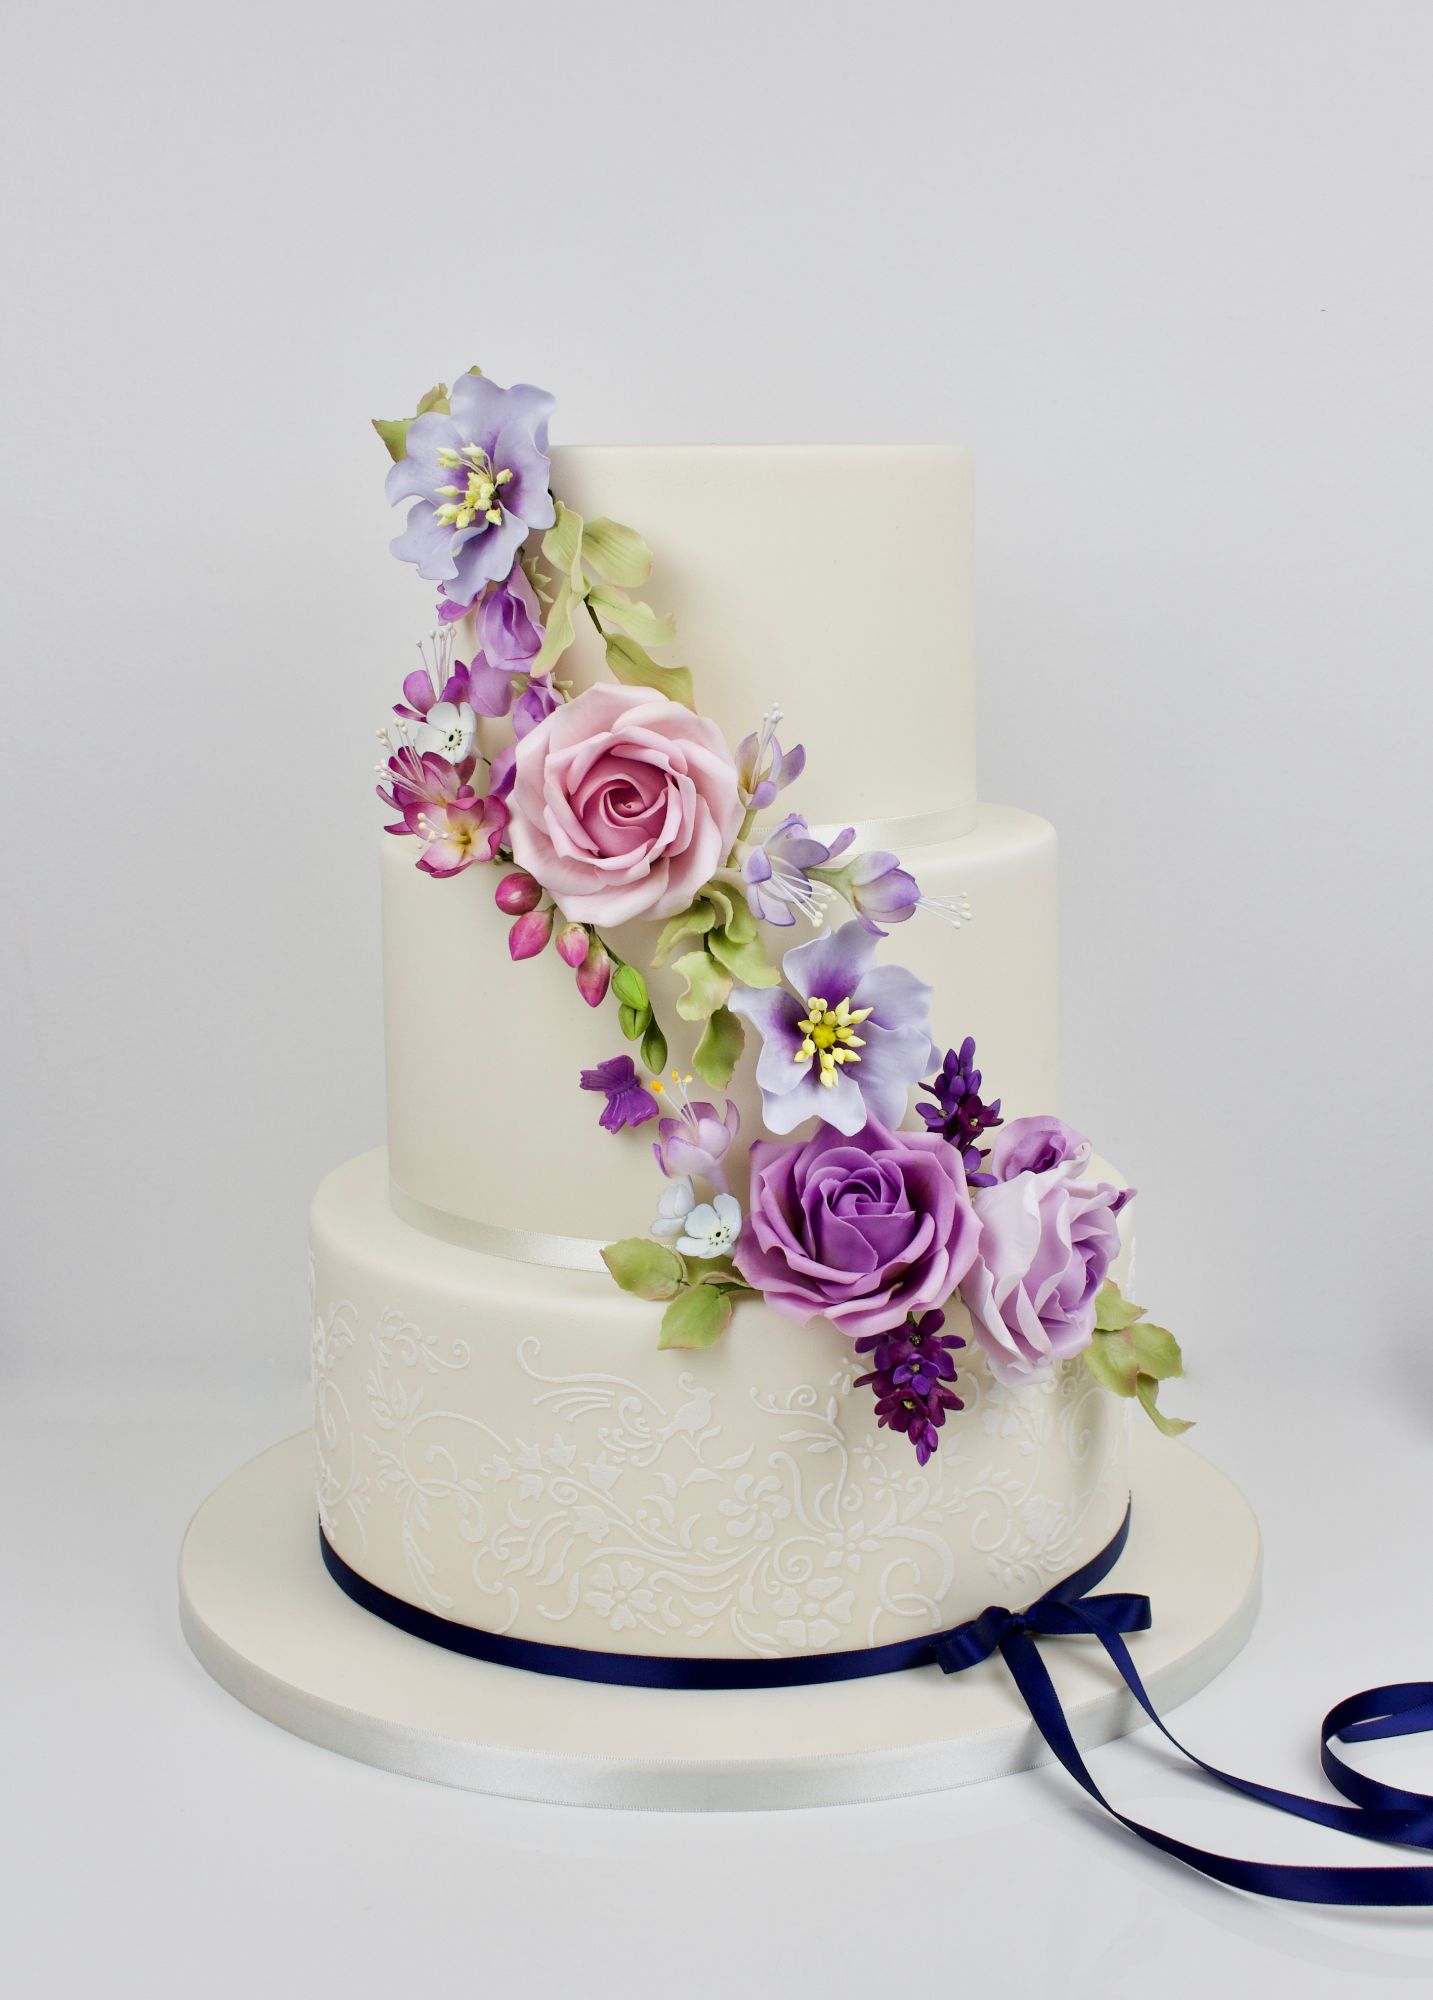 Purples and pinks dugar garden flowers with stenilled and navy ribbon